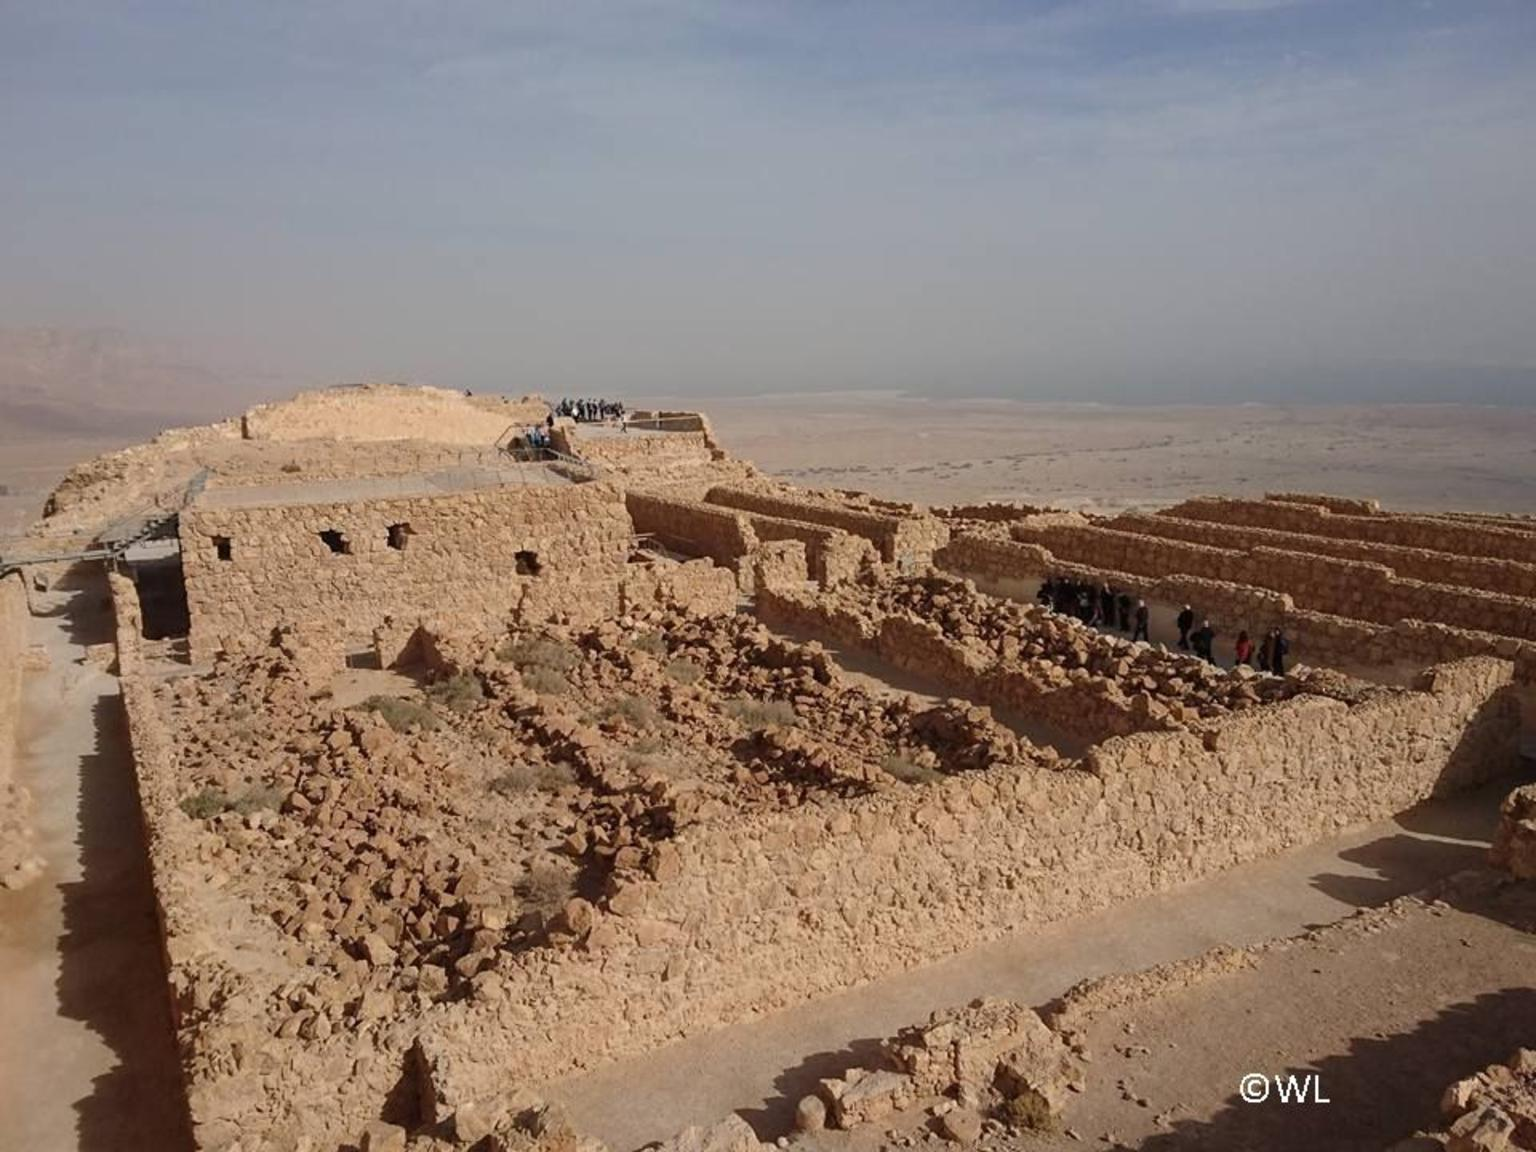 MORE PHOTOS, Masada, Ein Gedi and The Dead Sea from Jerusalem